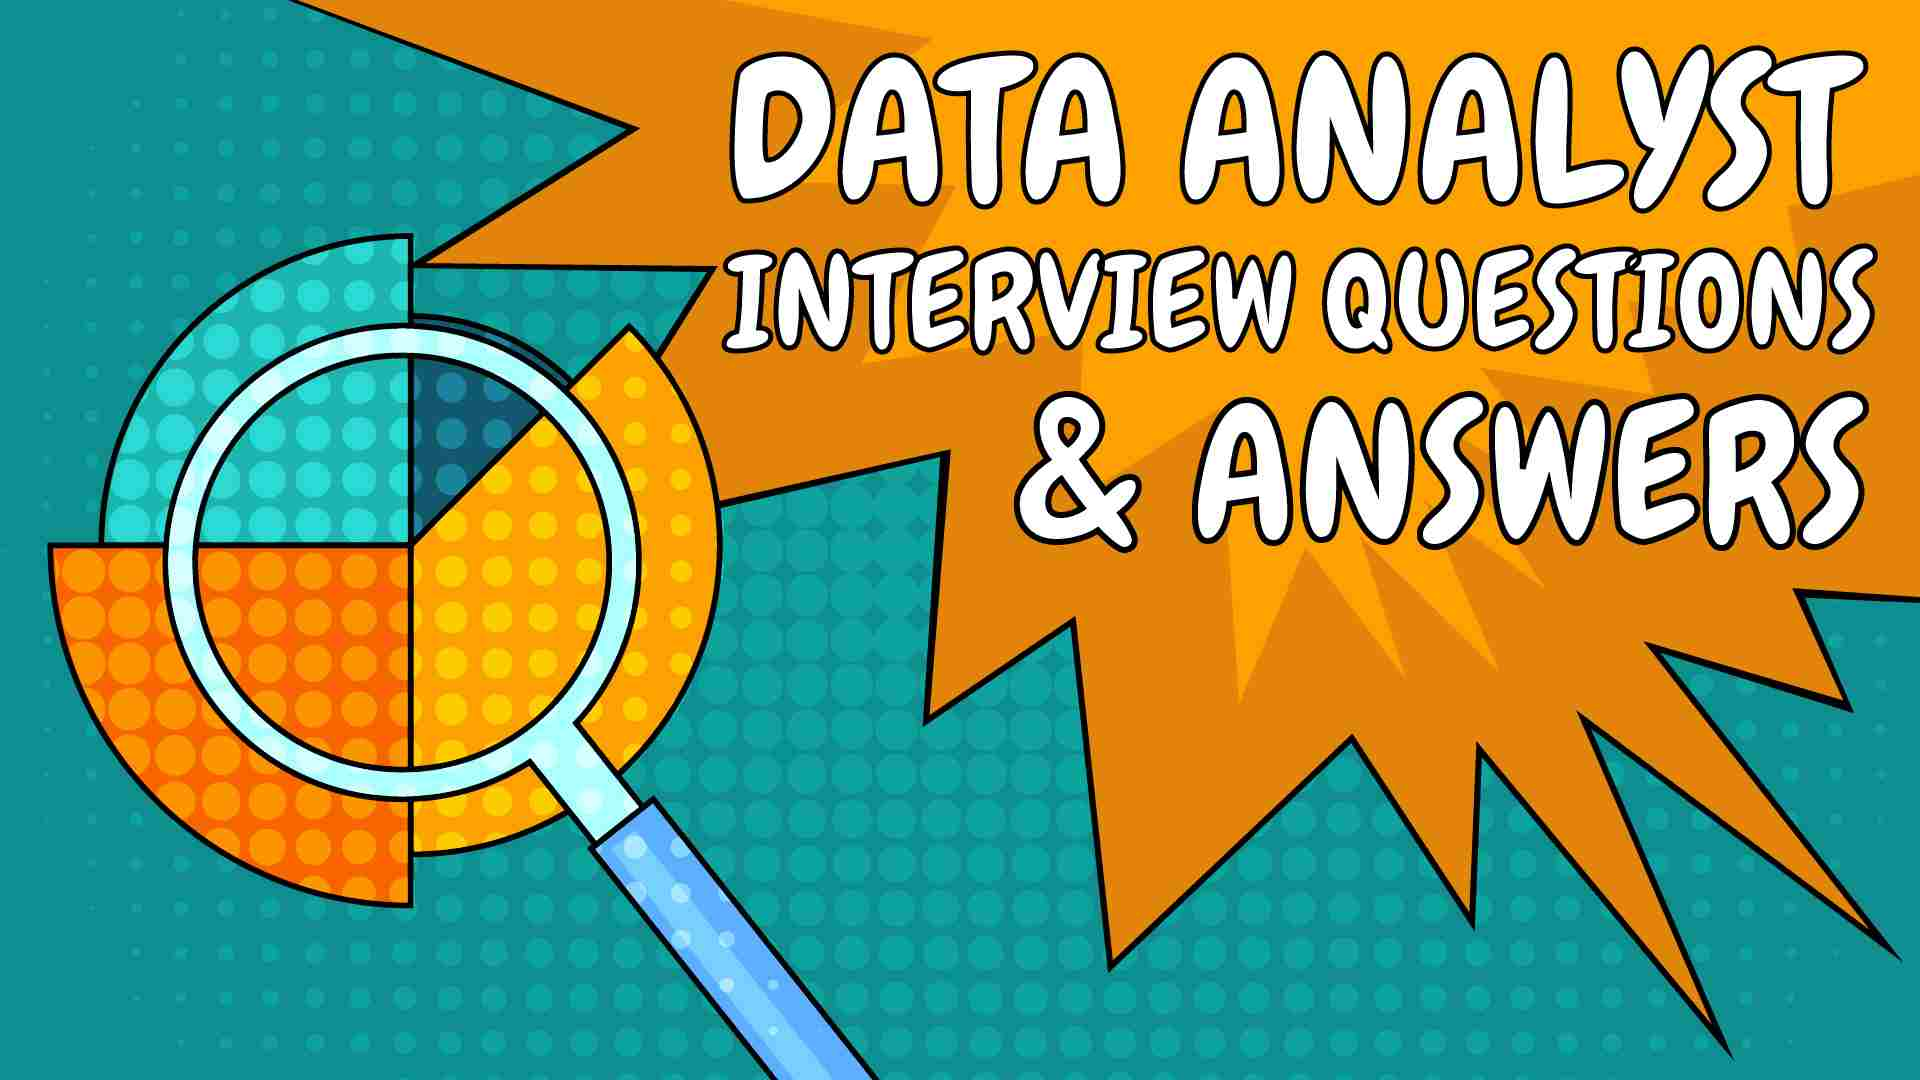 data analyst interview questions and answers, data analyst interview